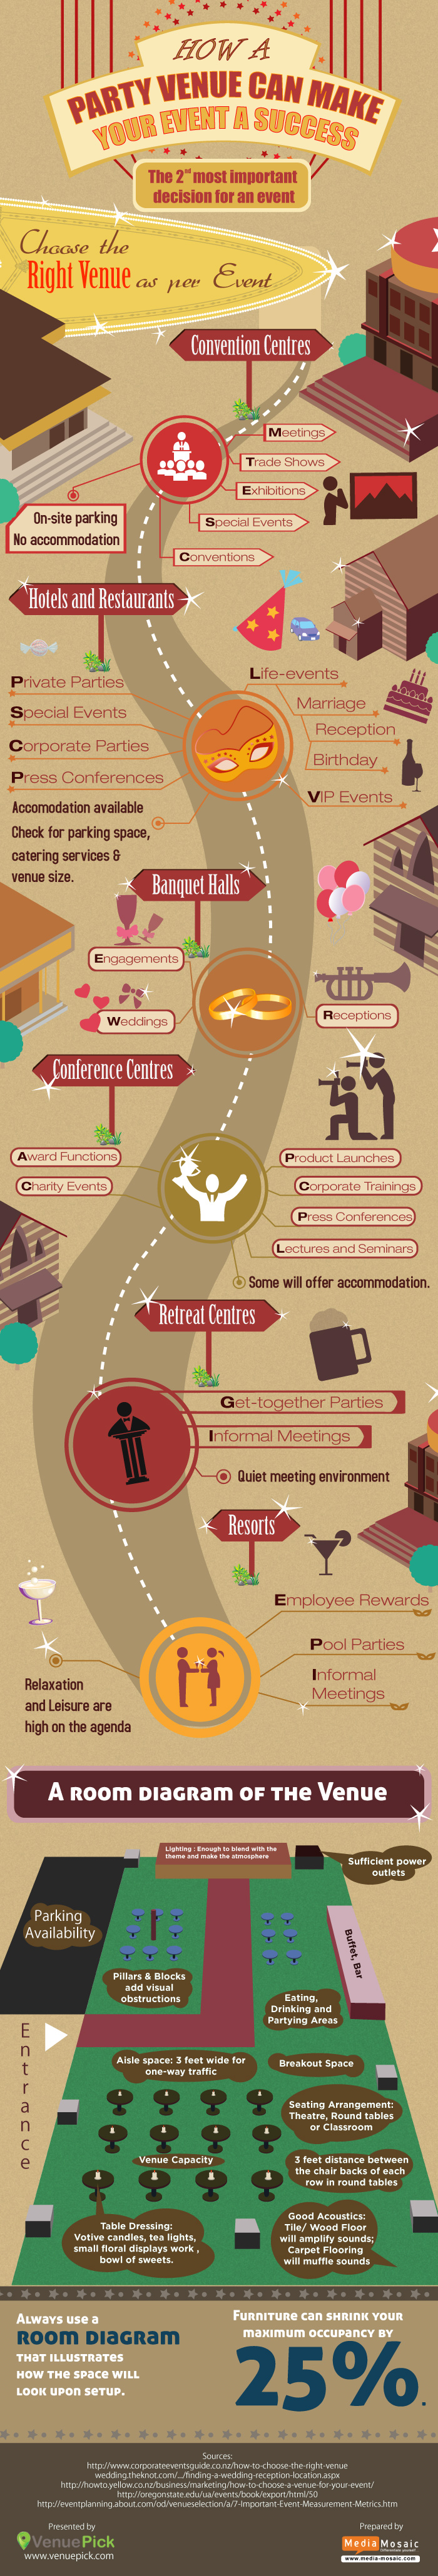 How-A-Party-Venue-Can-Make-An-Event-A-Success-Infographic-by-Venue-Pick